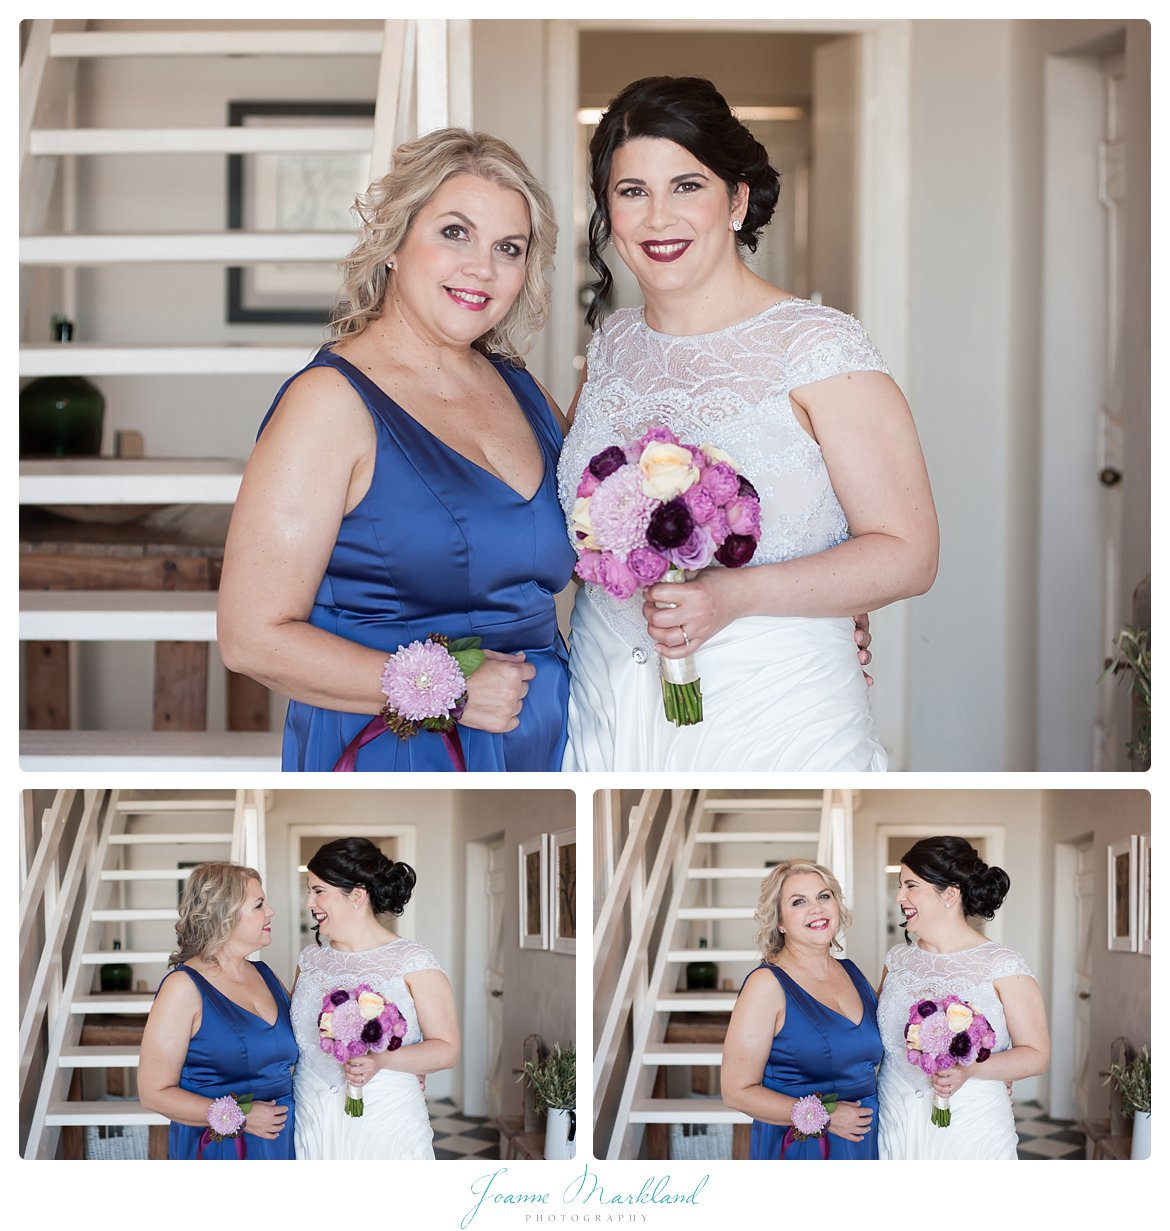 boorwater-wedding-hopefield-west-coast-cape-town-joanne-markland-photography-011